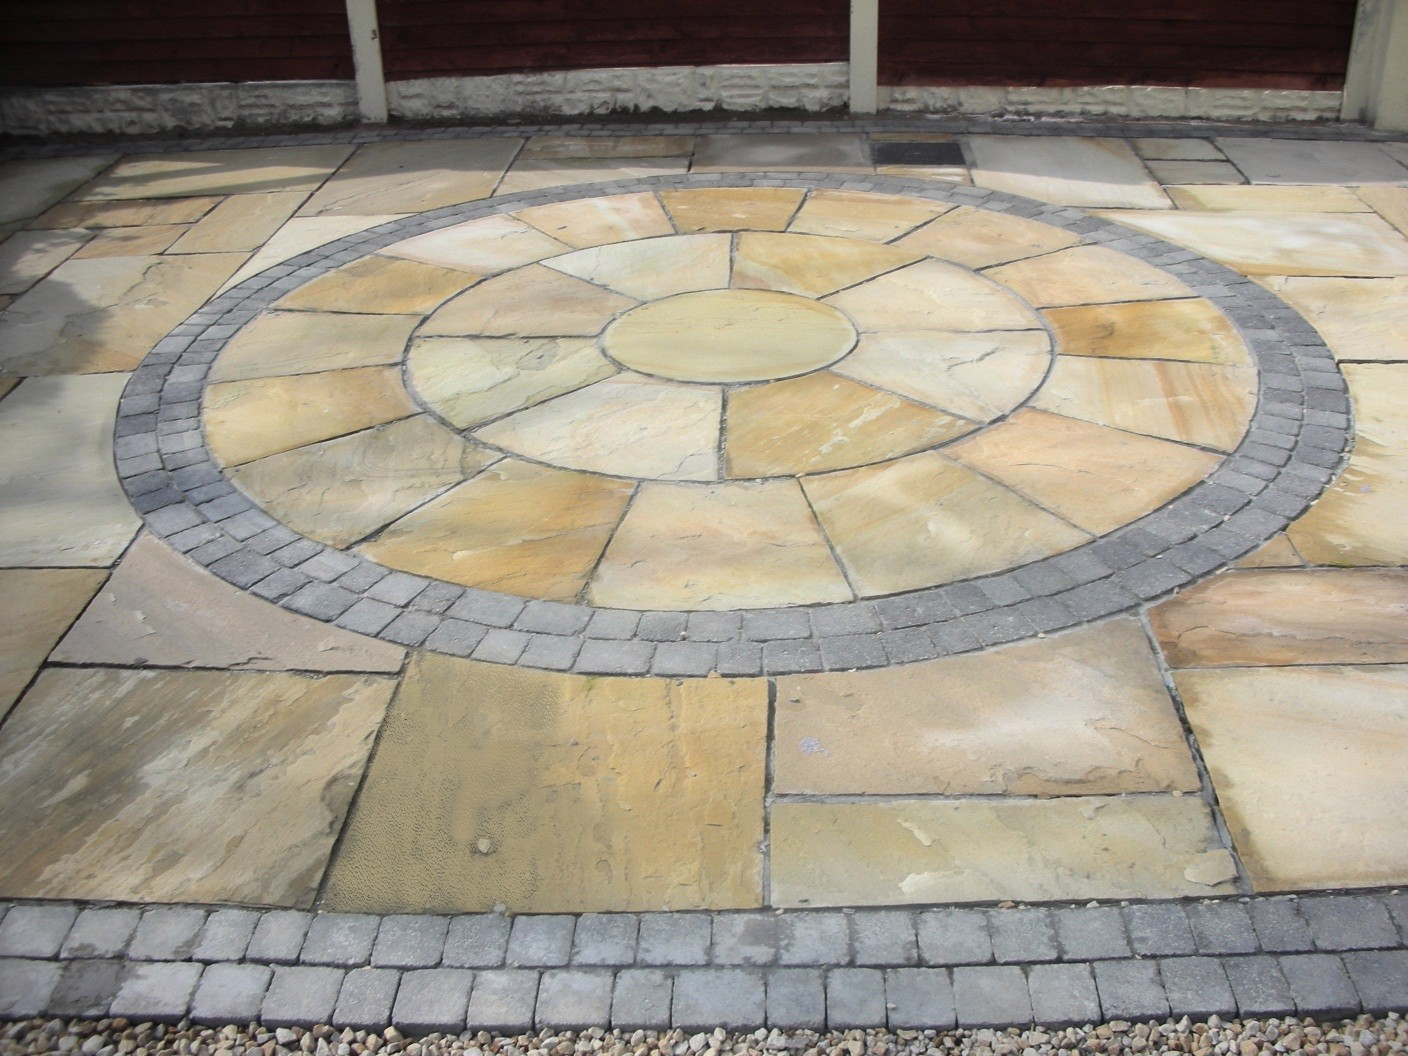 Indian Sandstone circle with Charcoal Brick edging